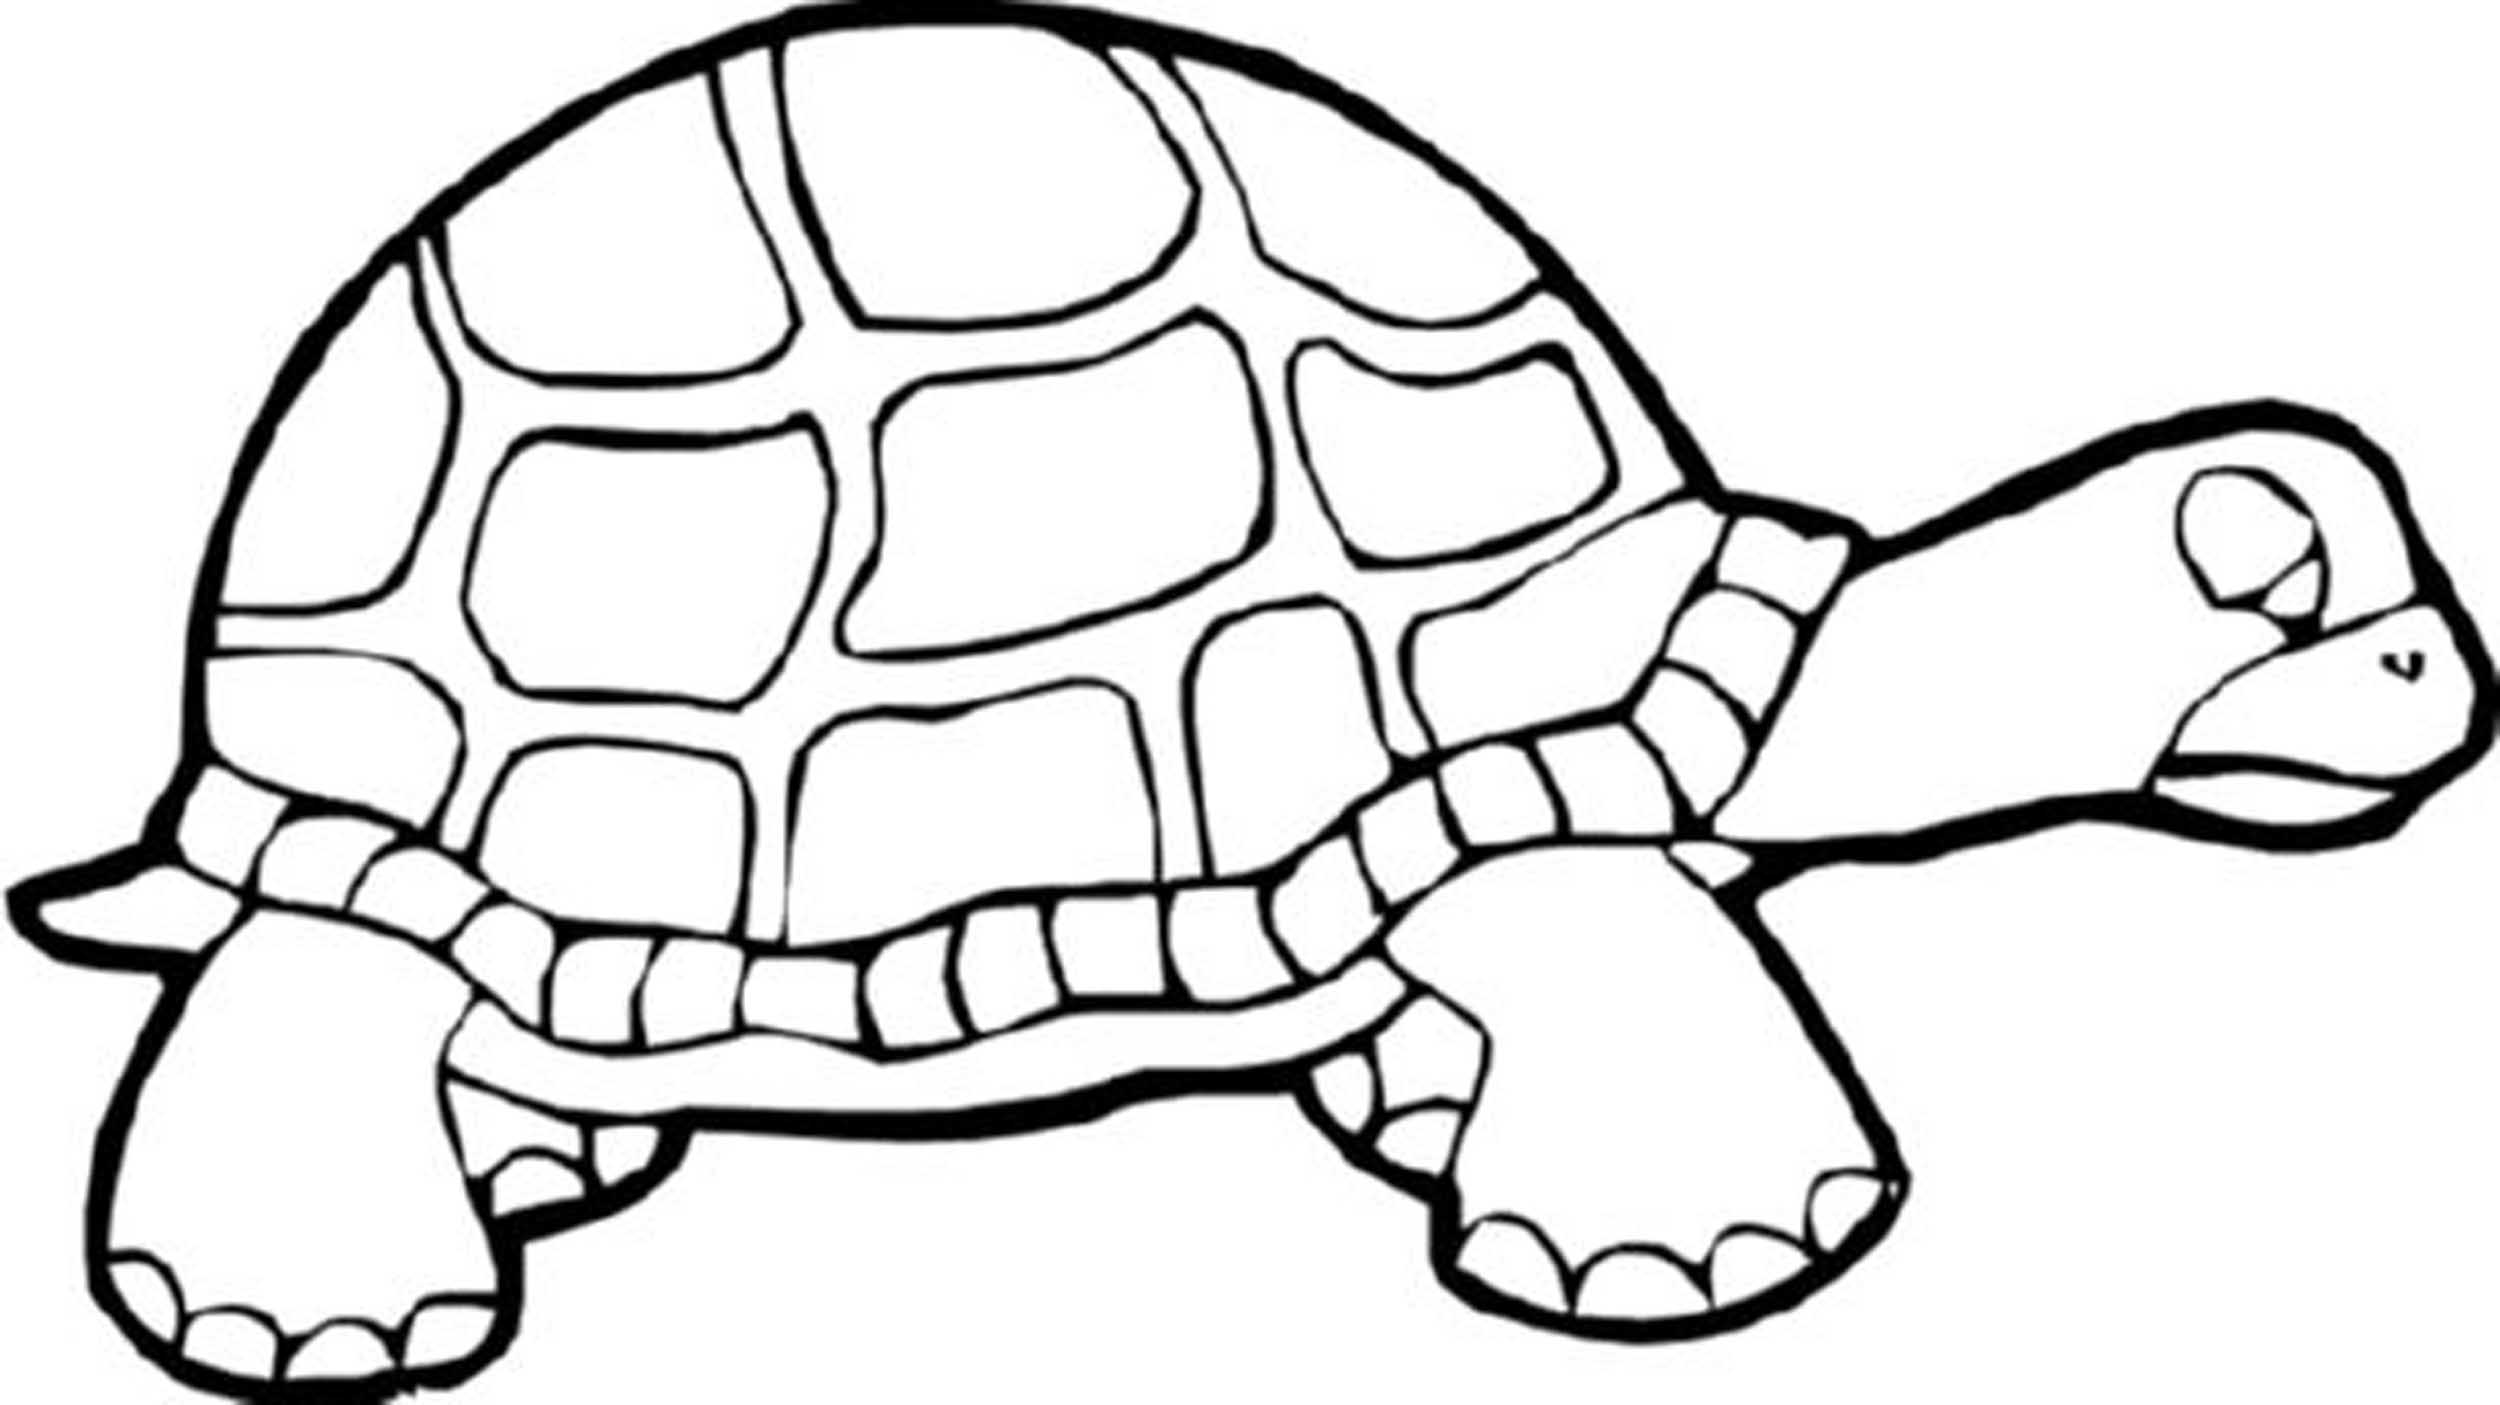 coloring pages turtle cute turtle coloring pages pages turtle coloring